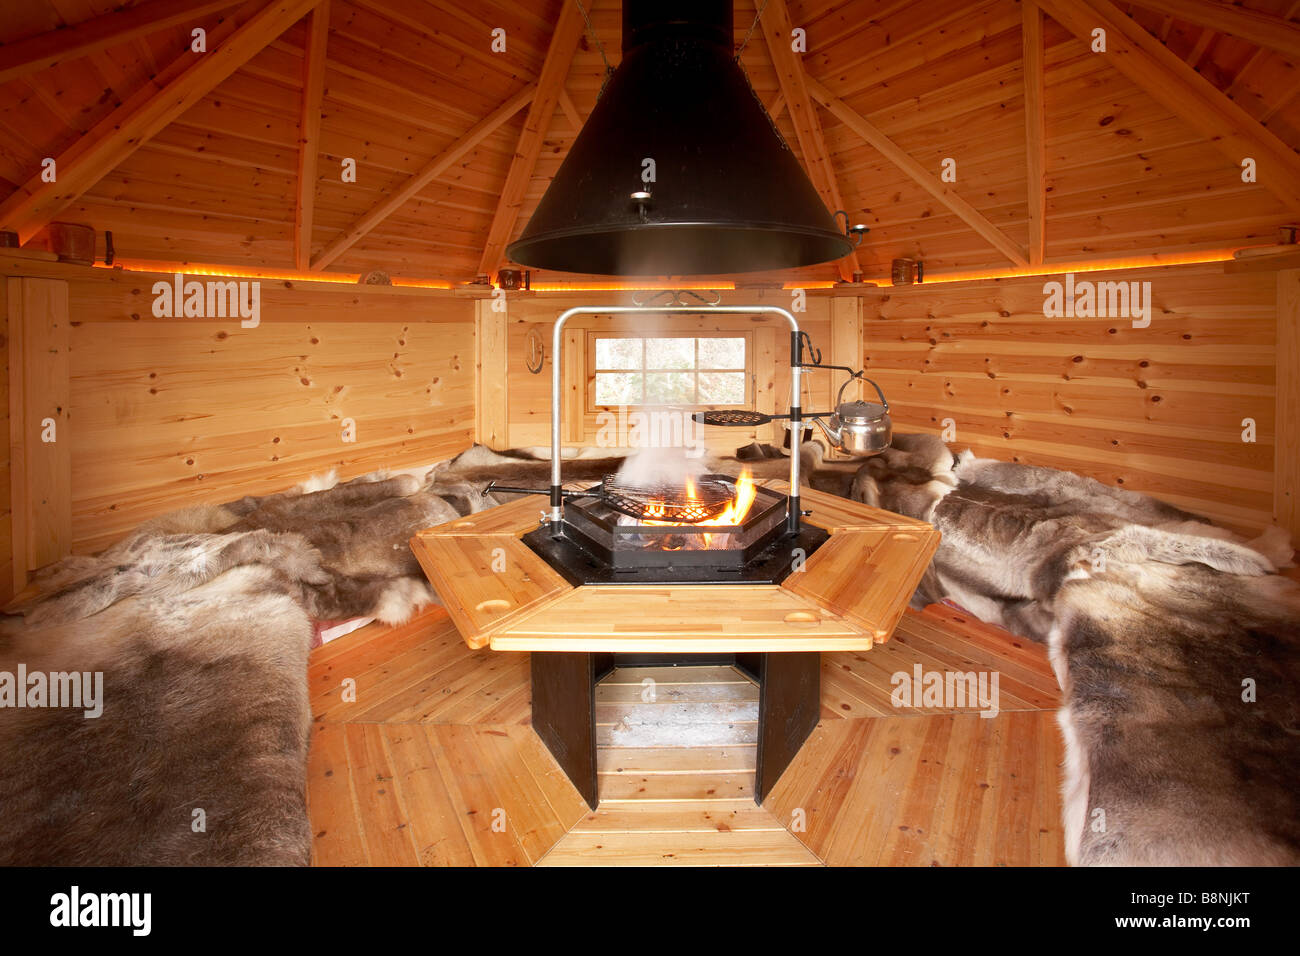 interior of a barbecue bbq hut with pine wood paneling and reindeer stock photo 22603276 alamy. Black Bedroom Furniture Sets. Home Design Ideas